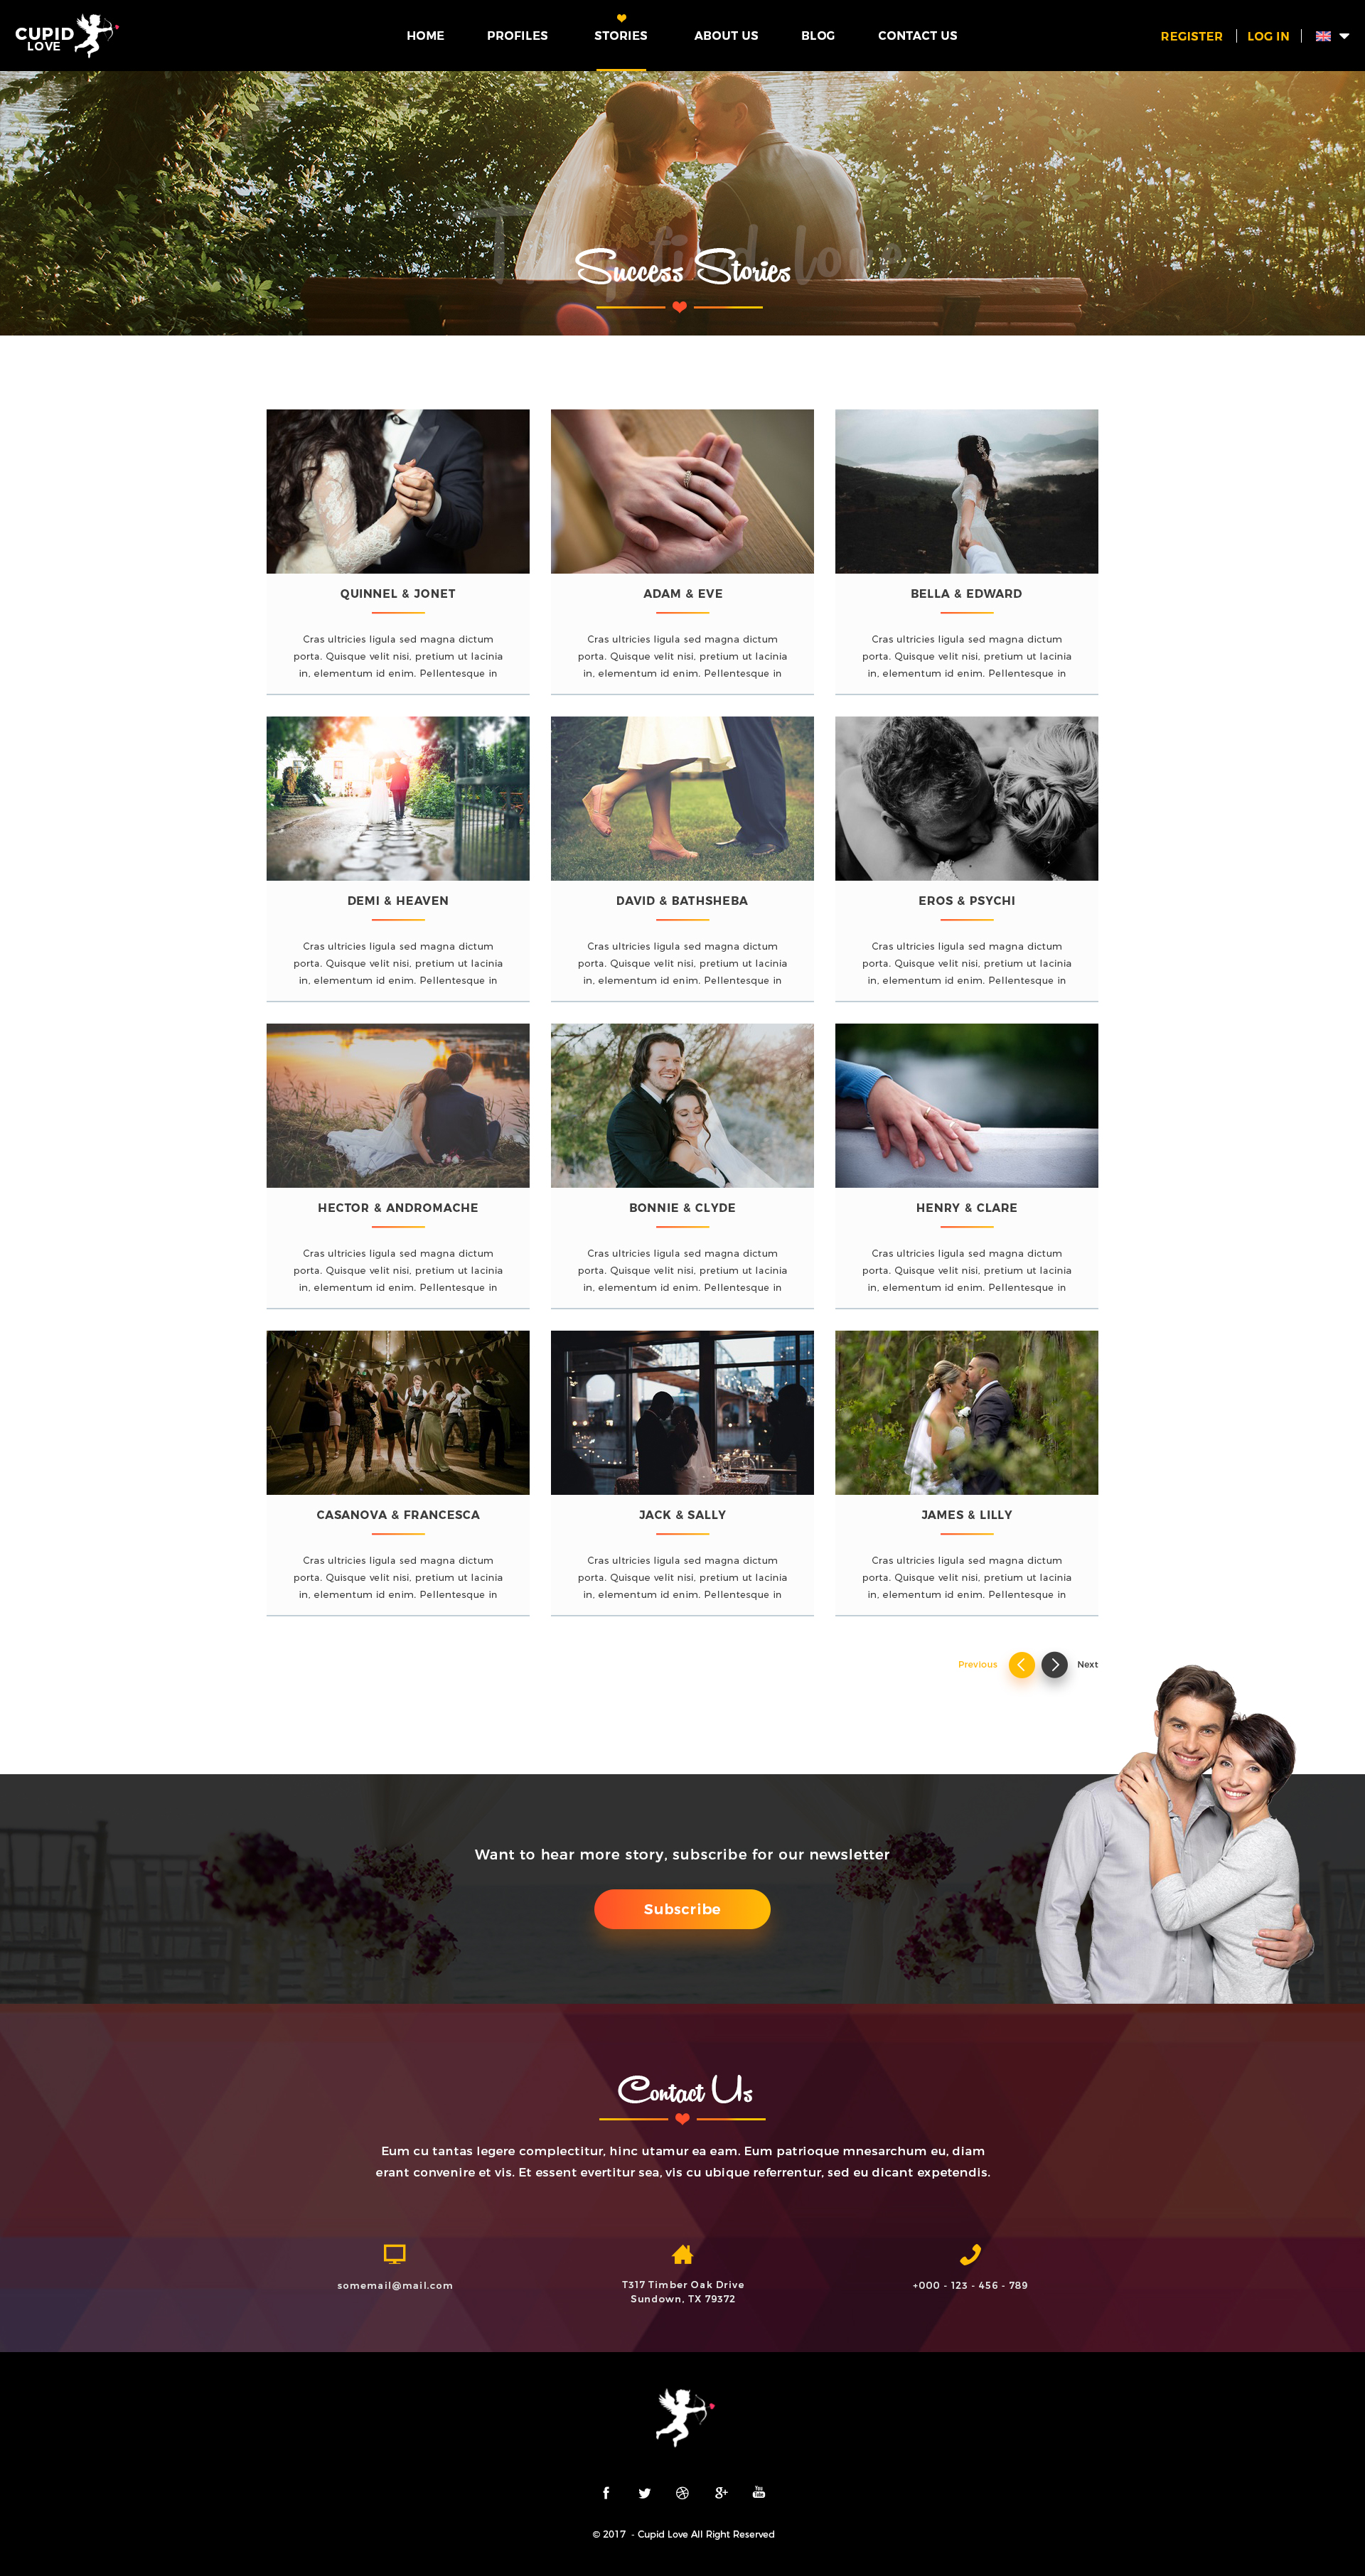 love dating website Premium dating website templates by template monster - a web design giant trusted by hundreds of thousands of happy customers 24/7 support included power up your site.